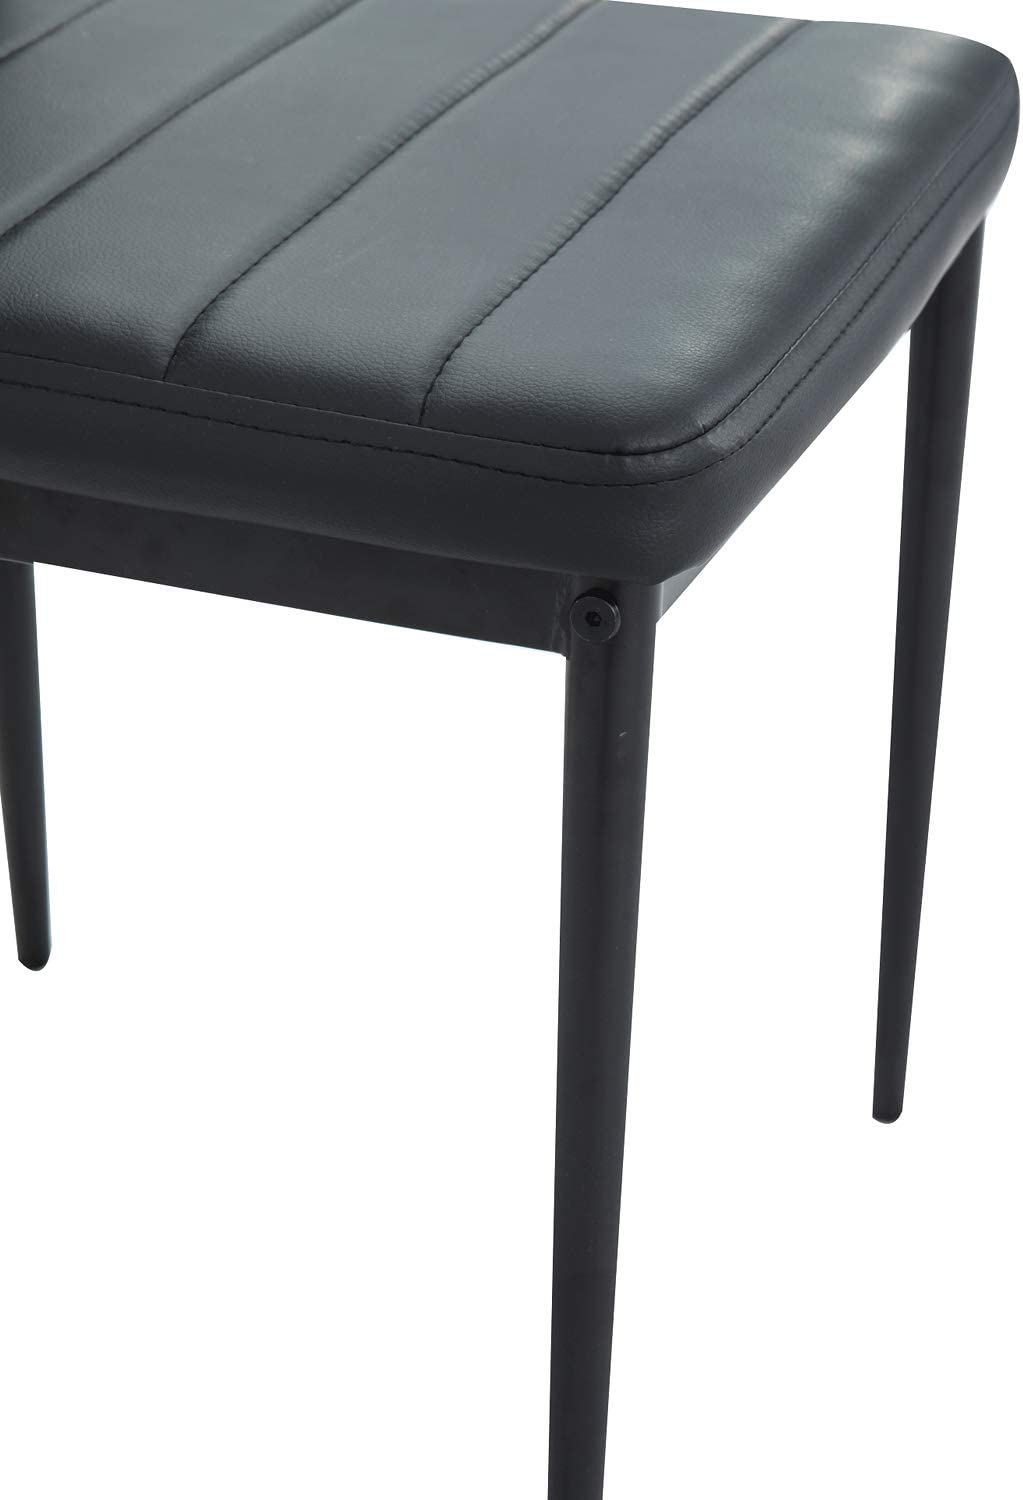 Dining Chairs Set Faux Leather Chairs Seats with High Back Soft Padded Black (Set of 4) 1.4m Mix Black Table With 4 Chairs